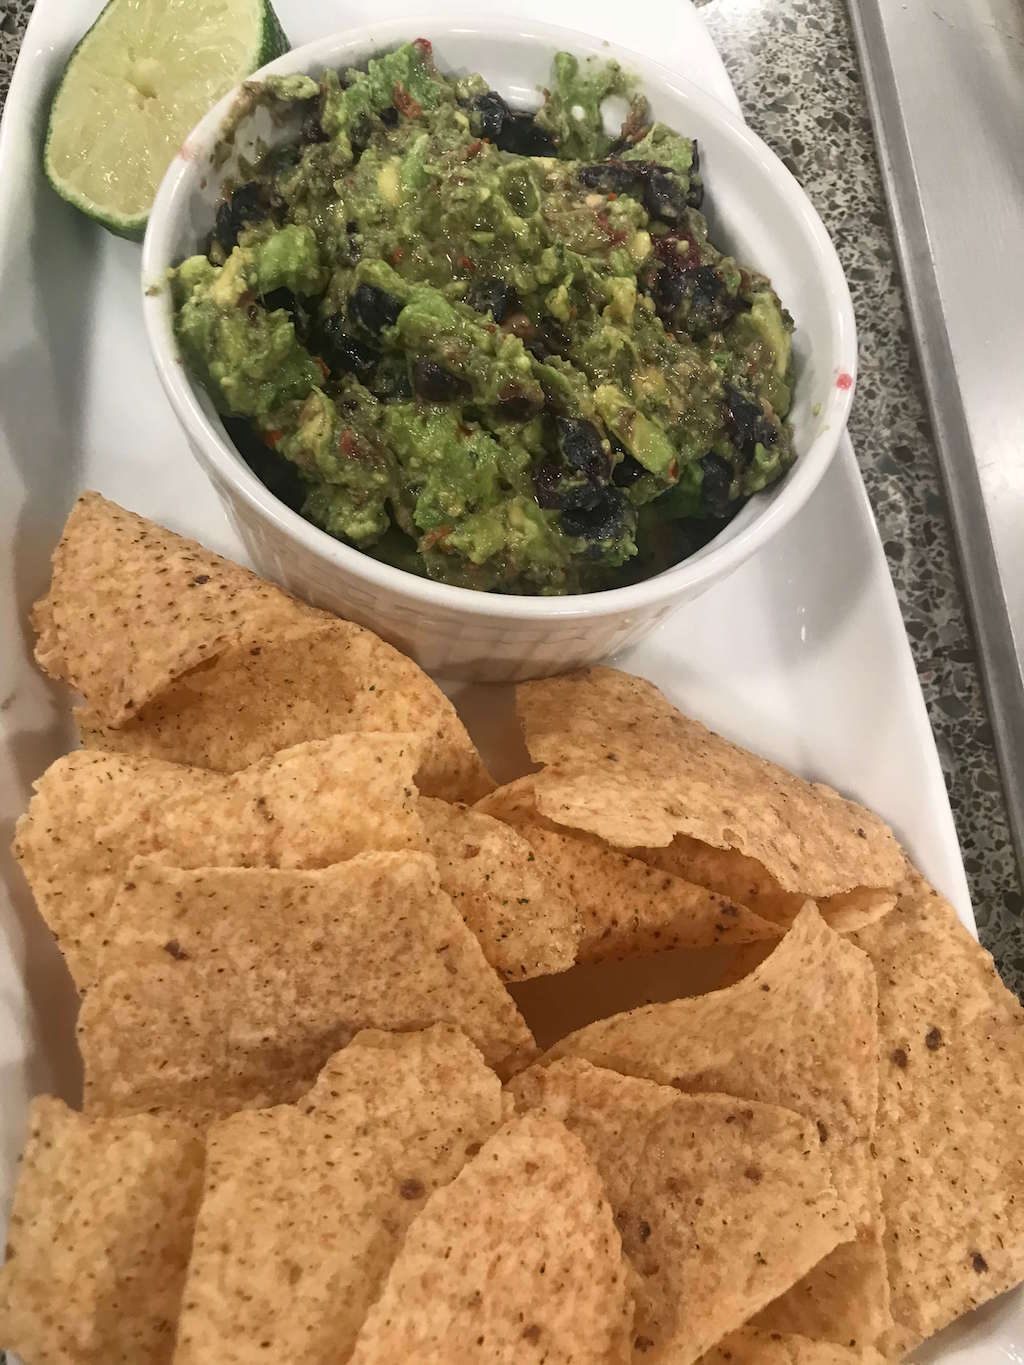 Tailgating Recipes: Blueberry Walnut Guacamole